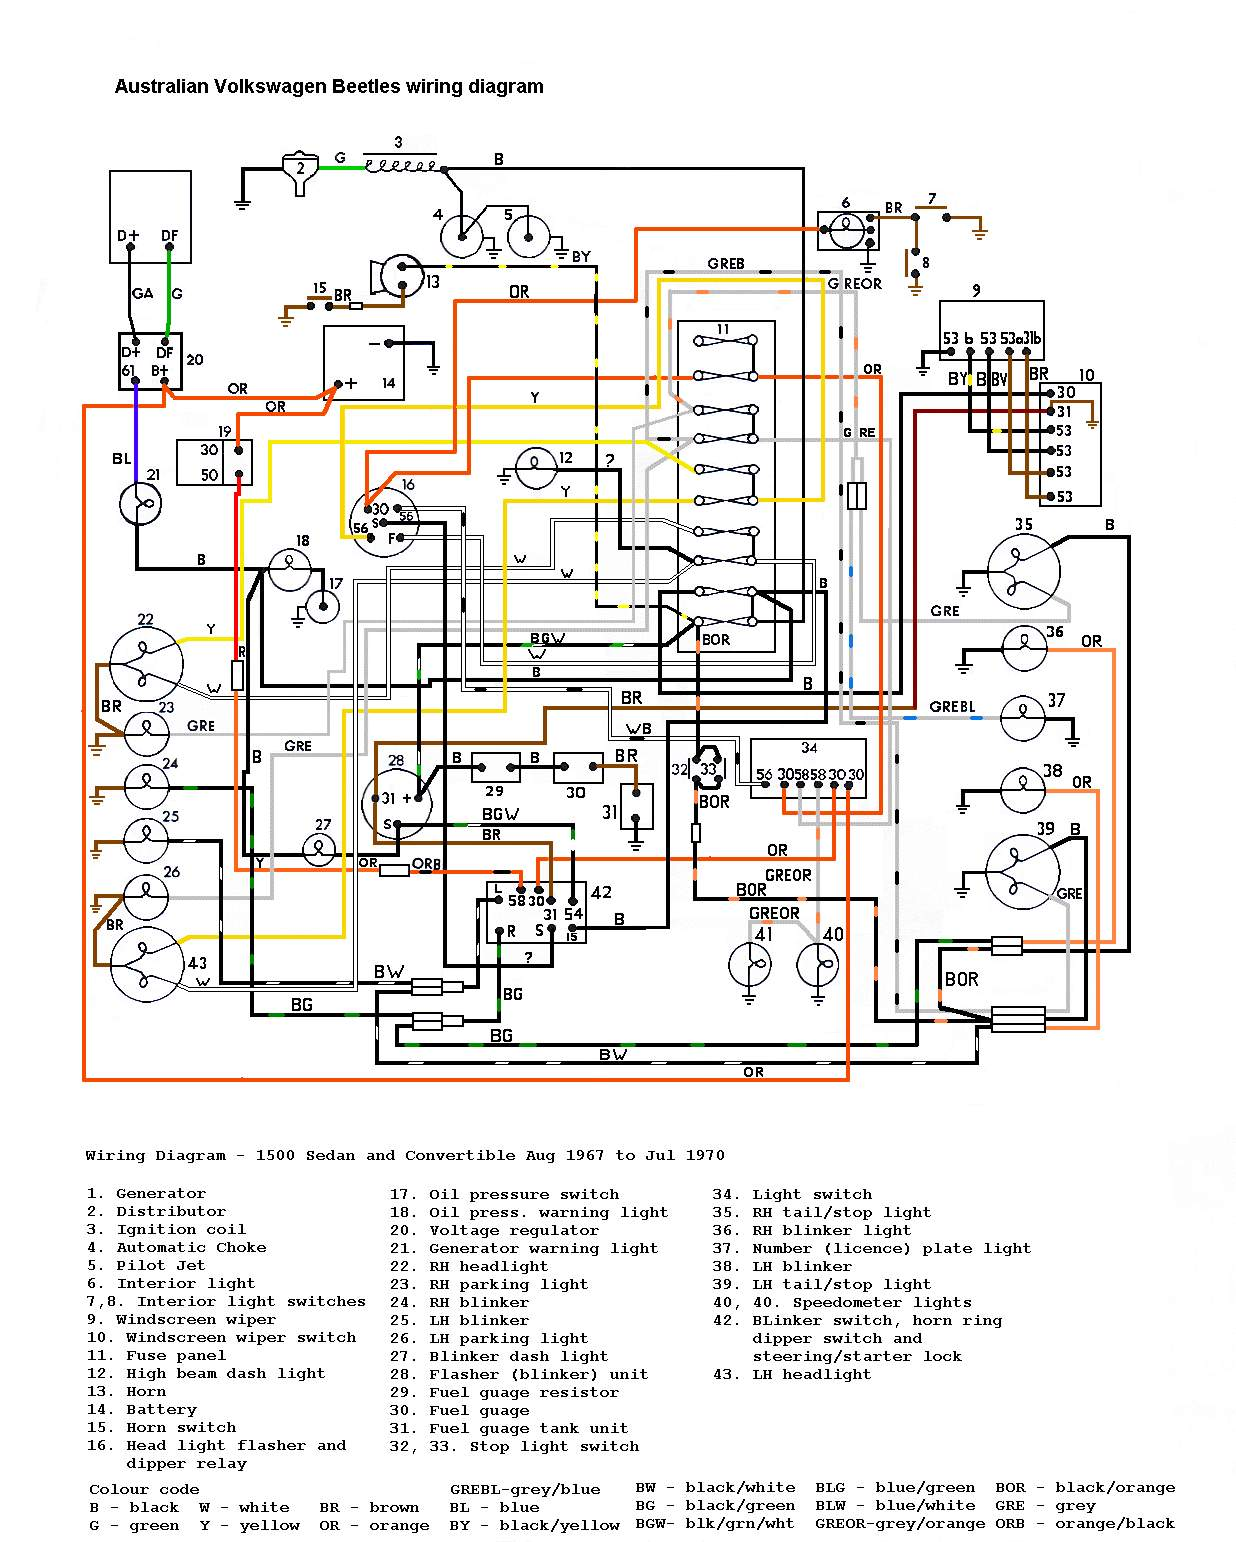 other diagrams 1967 to 1970 n vw 1500 sedan convertible wiring diagram